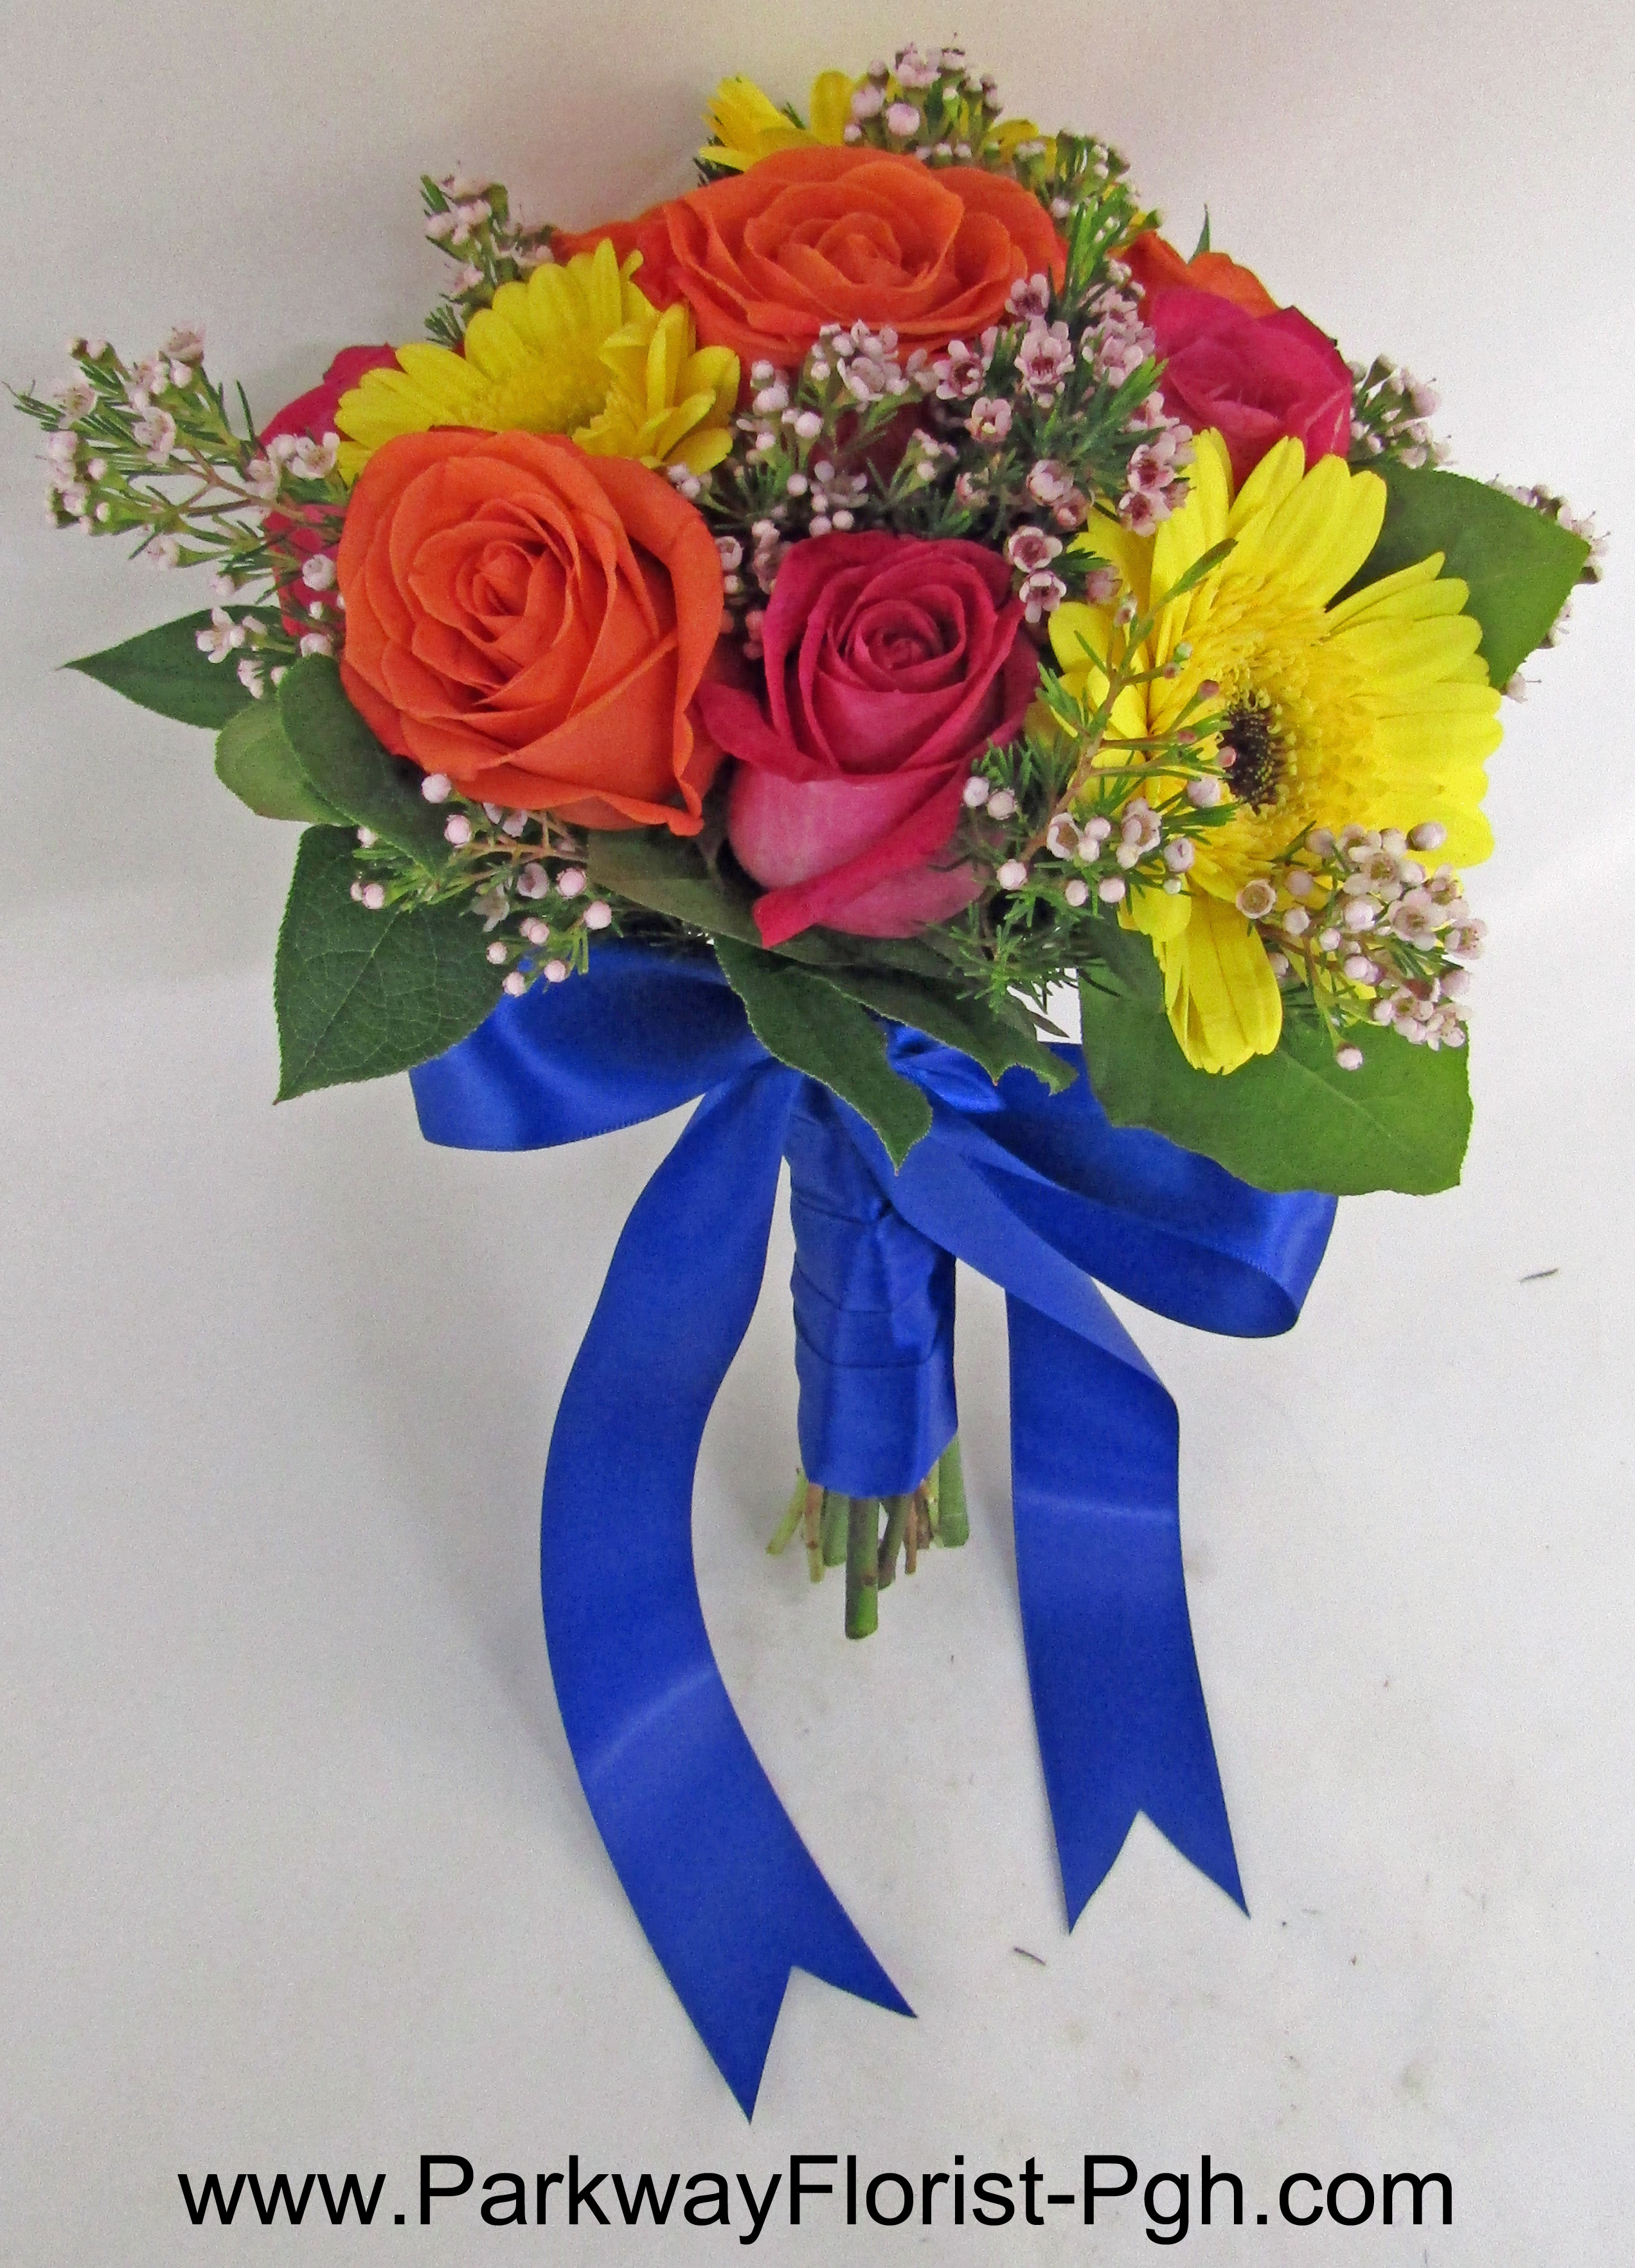 Prom flowers parkway florist pittsburgh blog prom 1a izmirmasajfo